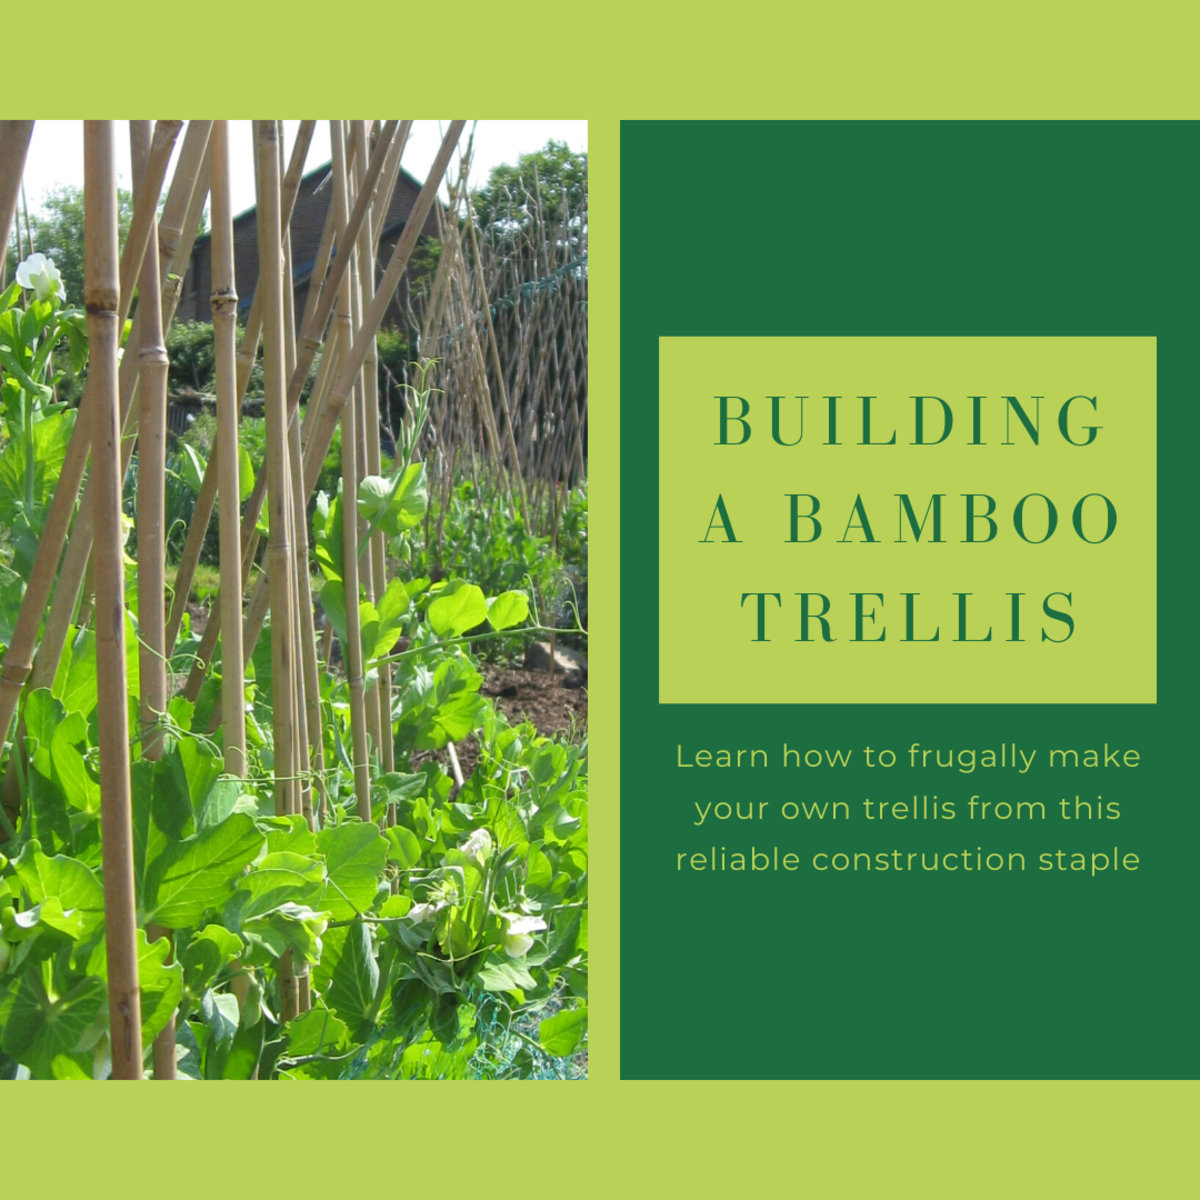 This article will show you how to build your own bamboo trellis at virtually zero cost.